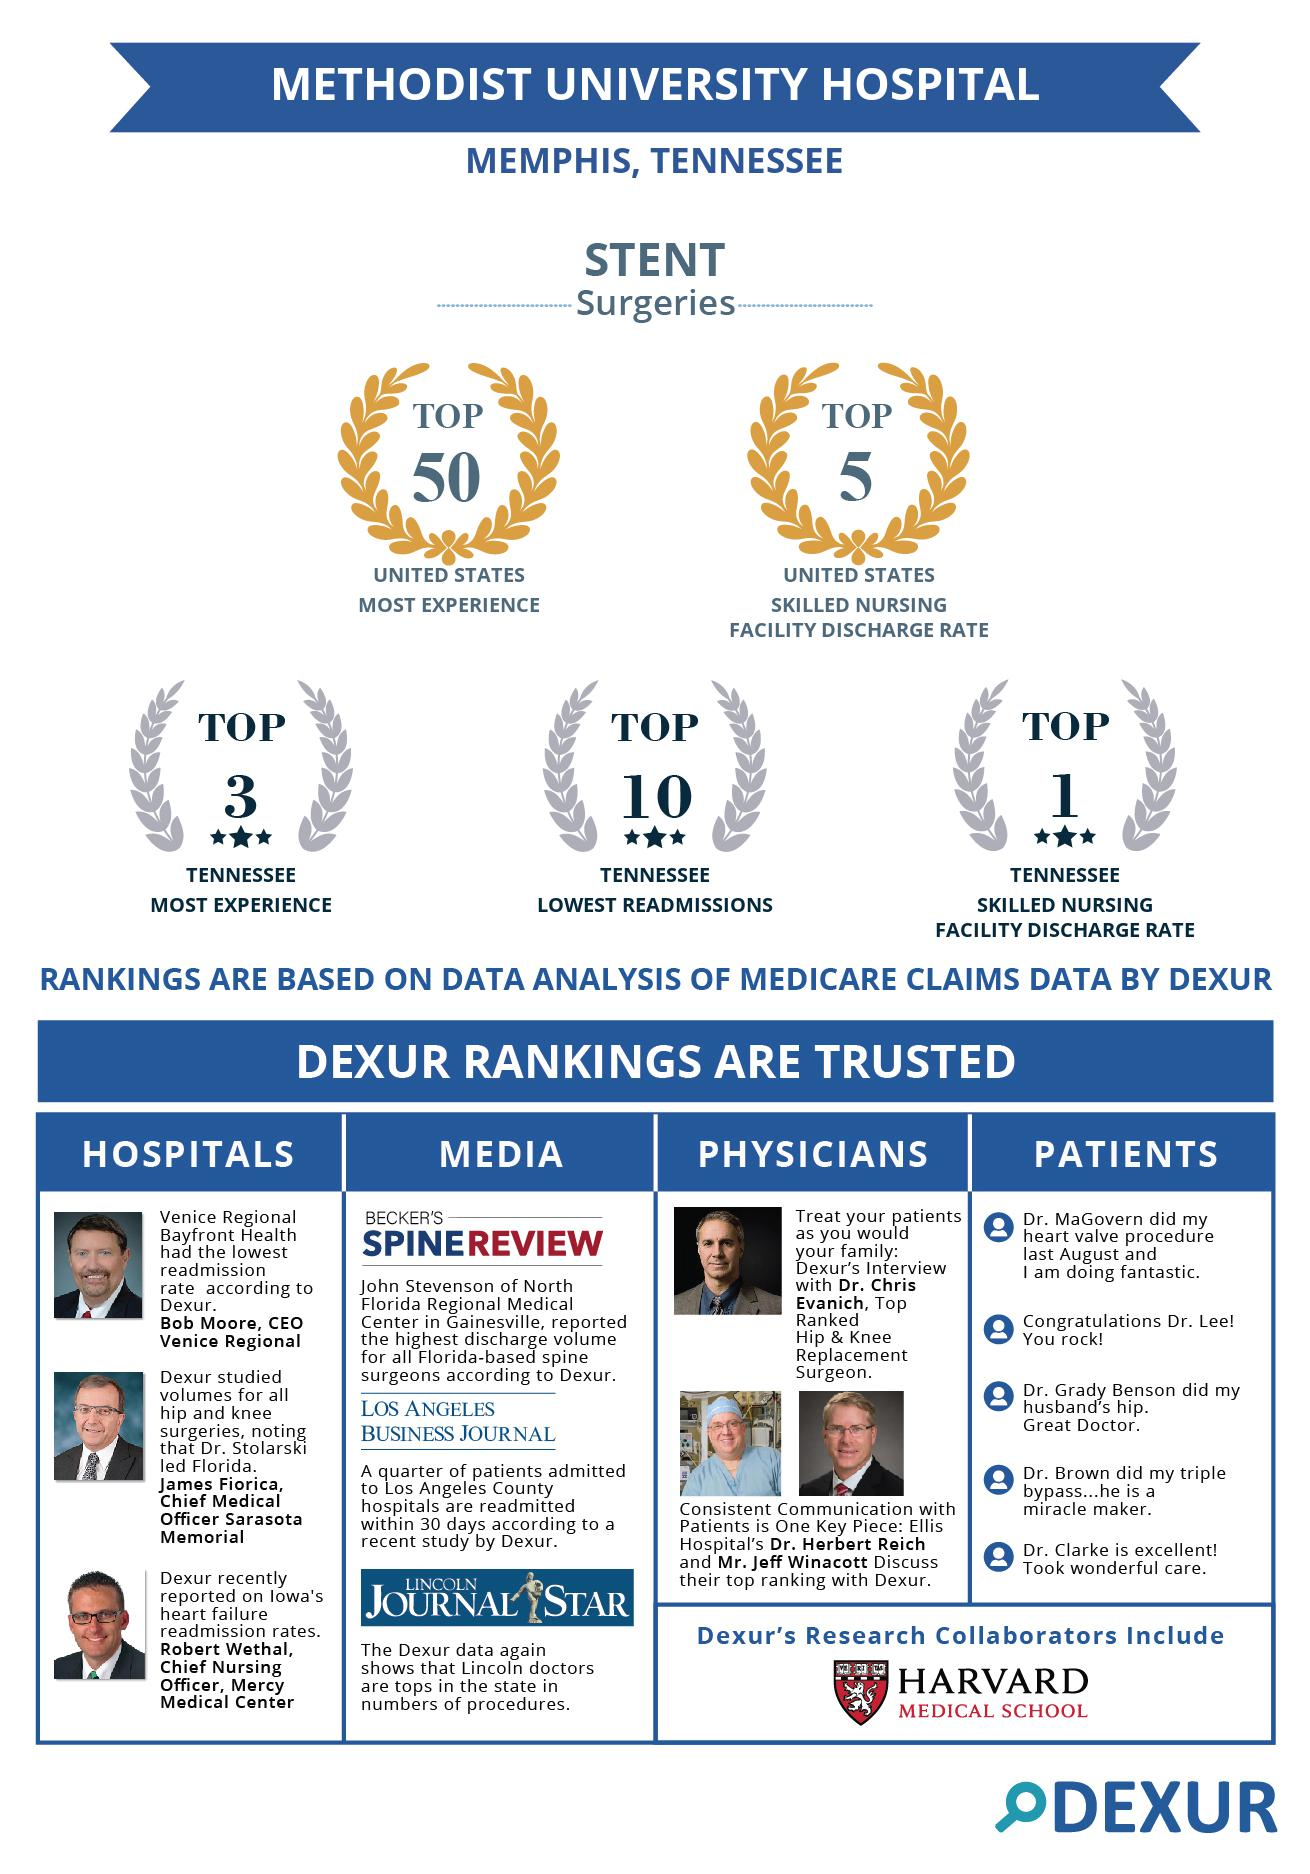 Methodist University Hospital, Memphis, TN is among the top ranked